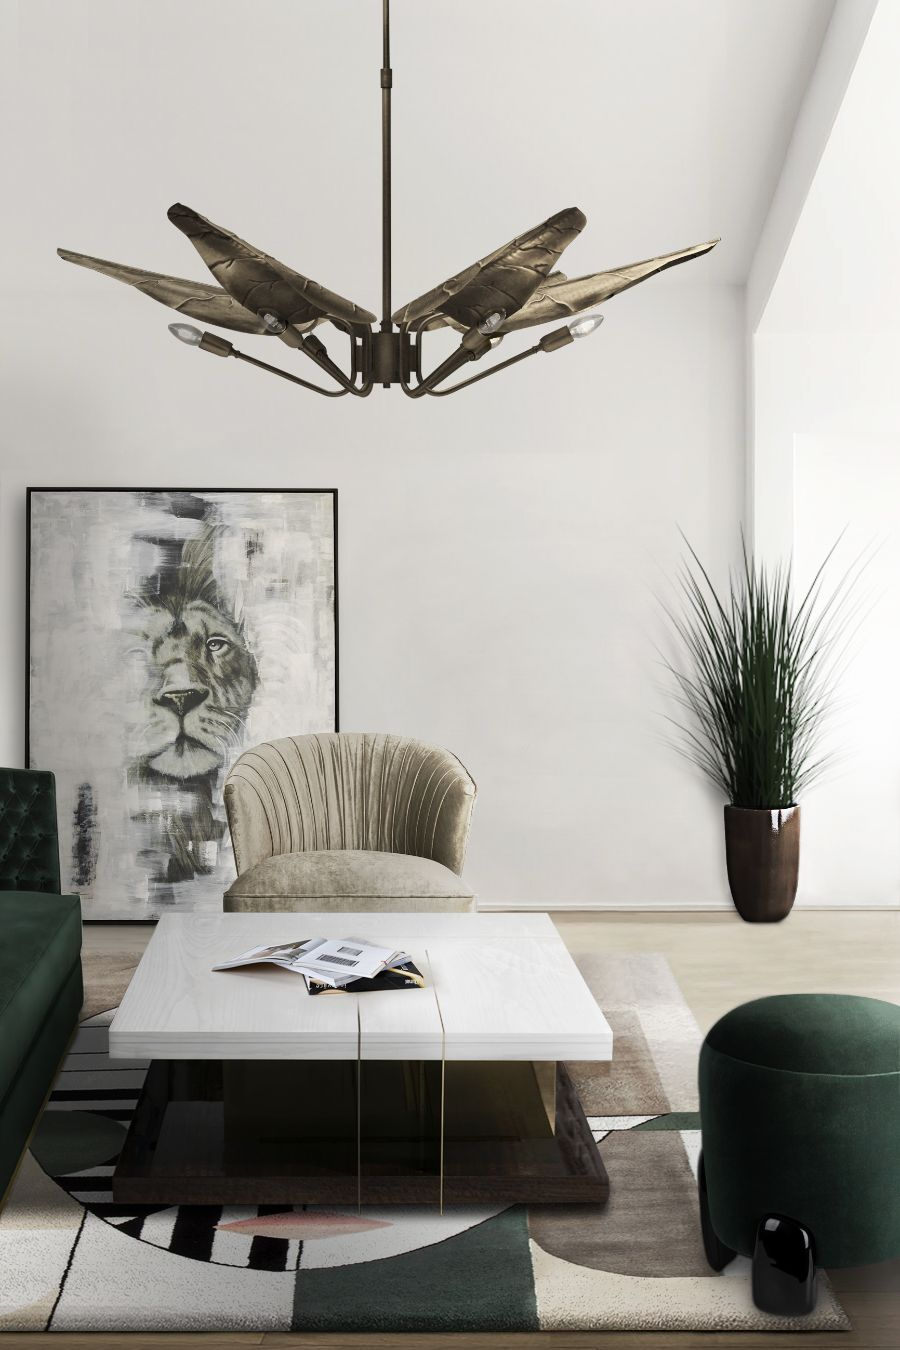 Modern Living Room Chairs: Timeless Design Across all Trends modern living room chairs Modern Living Room Chairs: 10 Timeless Design Across all Trends Modern Living Room Chairs Timeless Design Across all Trends 7